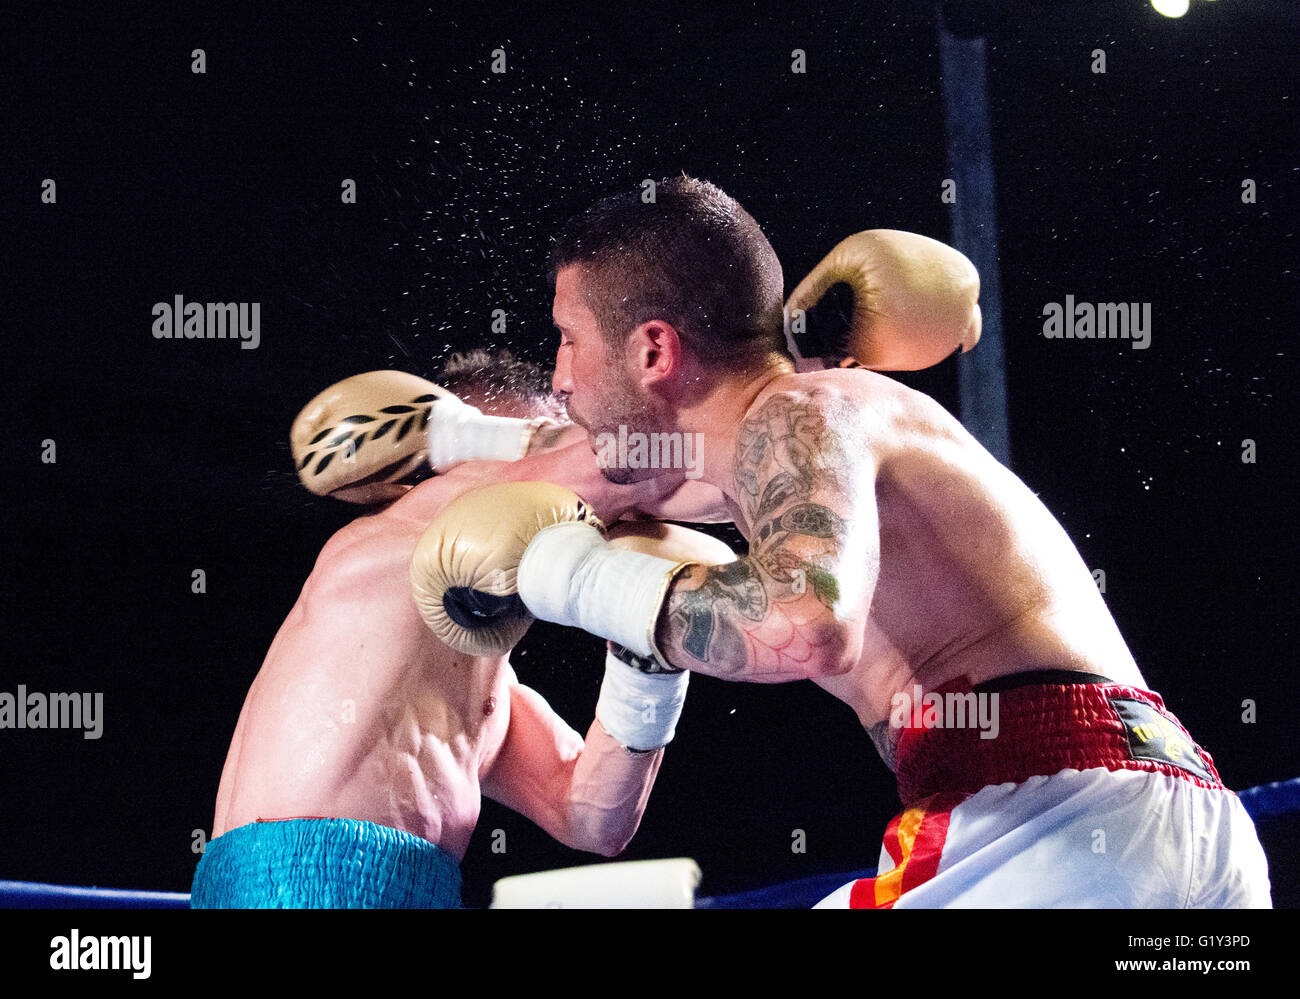 Gijon, Spain. 21st May, 2016. Marc Vidal hits Juancho Gonzalez during the boxing match of Spanish national featherweight - Stock Image